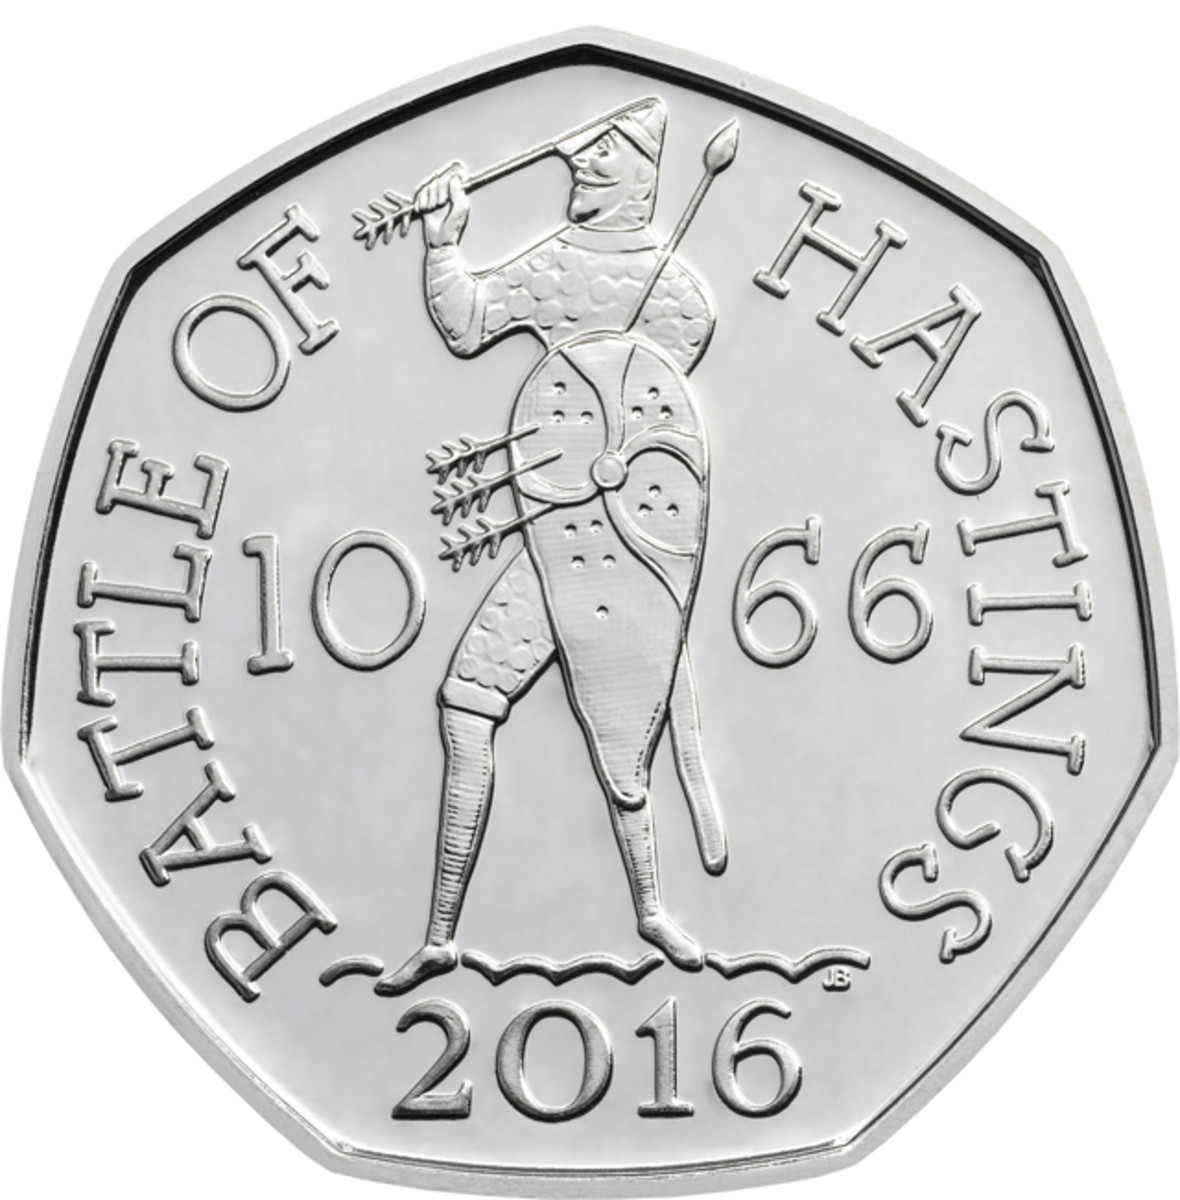 The commemorative 50p coin to be struck to mark the 950th Anniversary of The Battle of Hastings. John Bergdahl's design shows the fate of King Harold II as depicted on the Bayeux Tapestry.